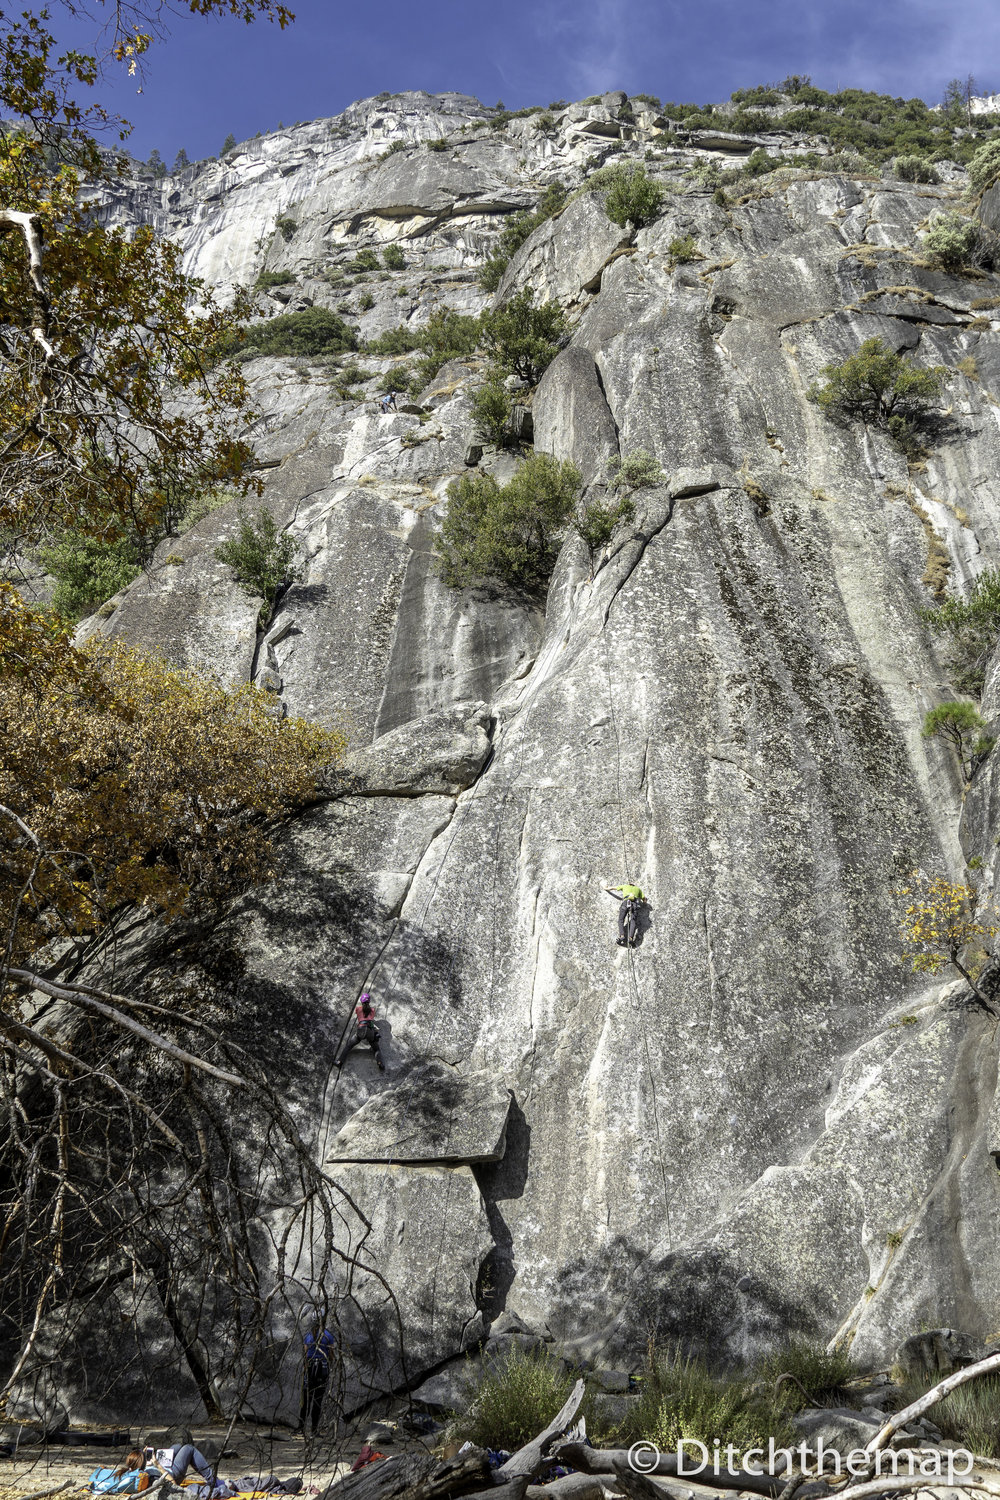 Adventurers climbing on large rocks in a national park